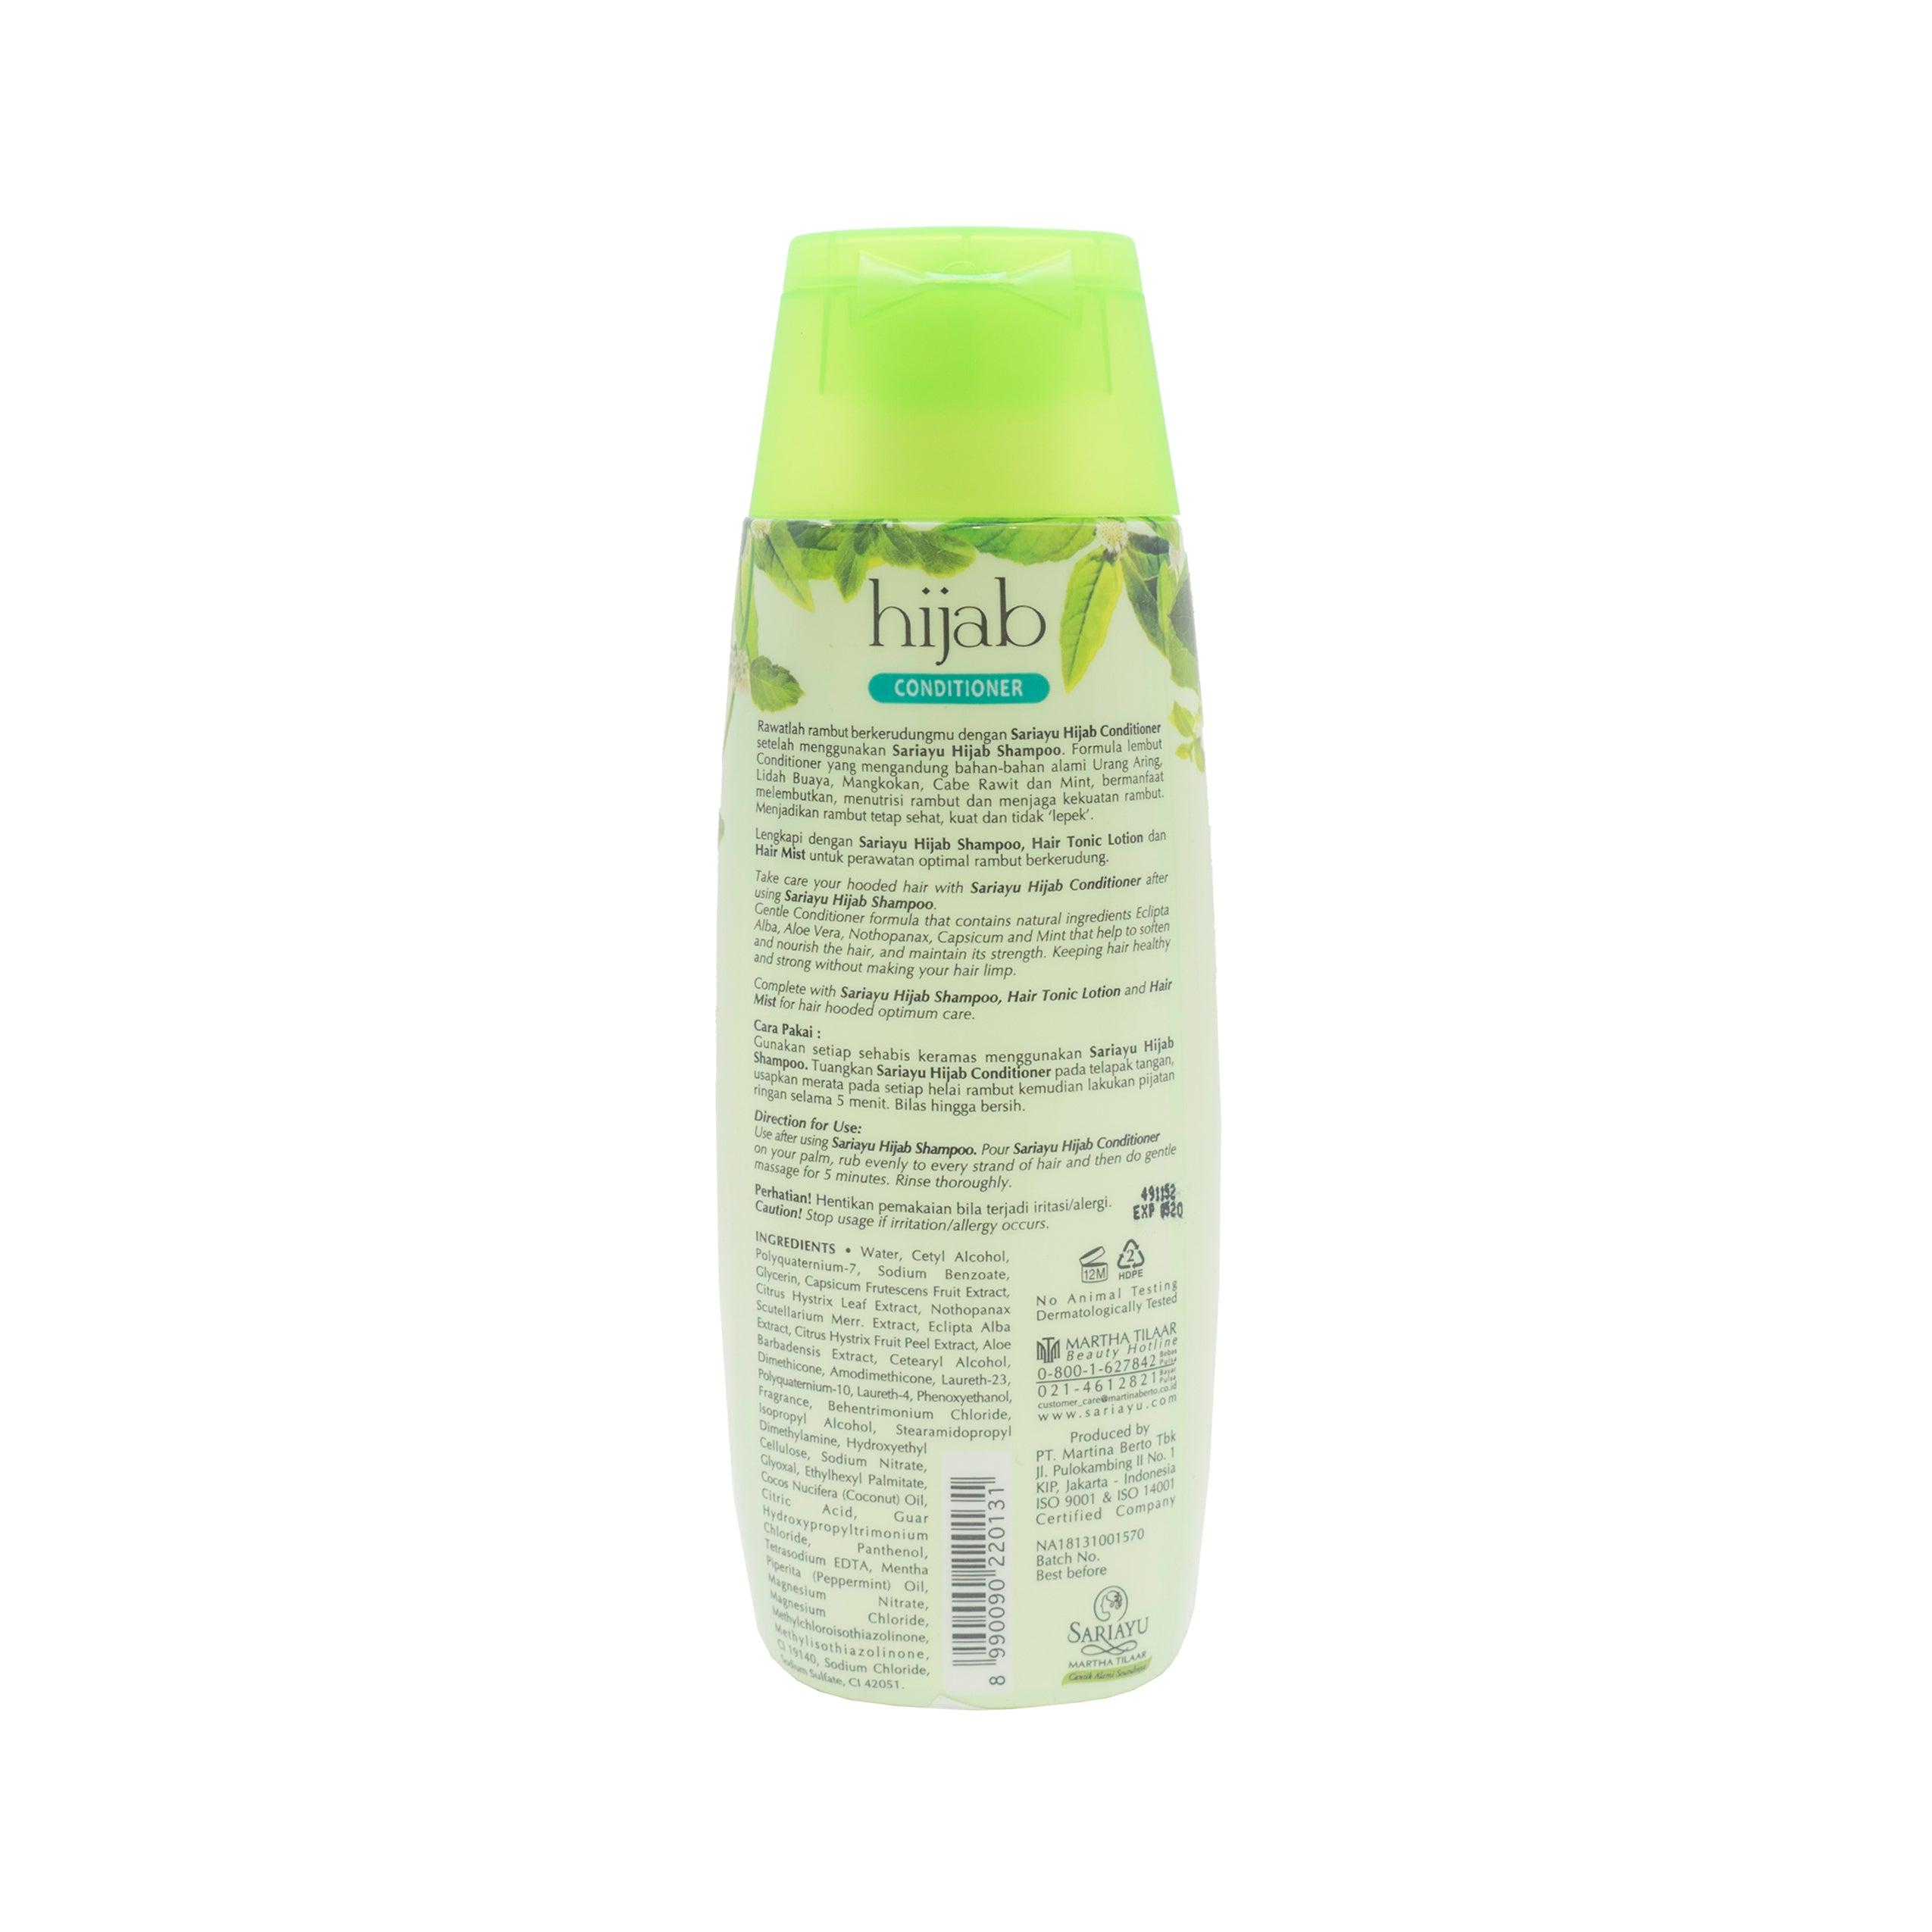 Sariayu, Hijab Conditioner, 180 ml